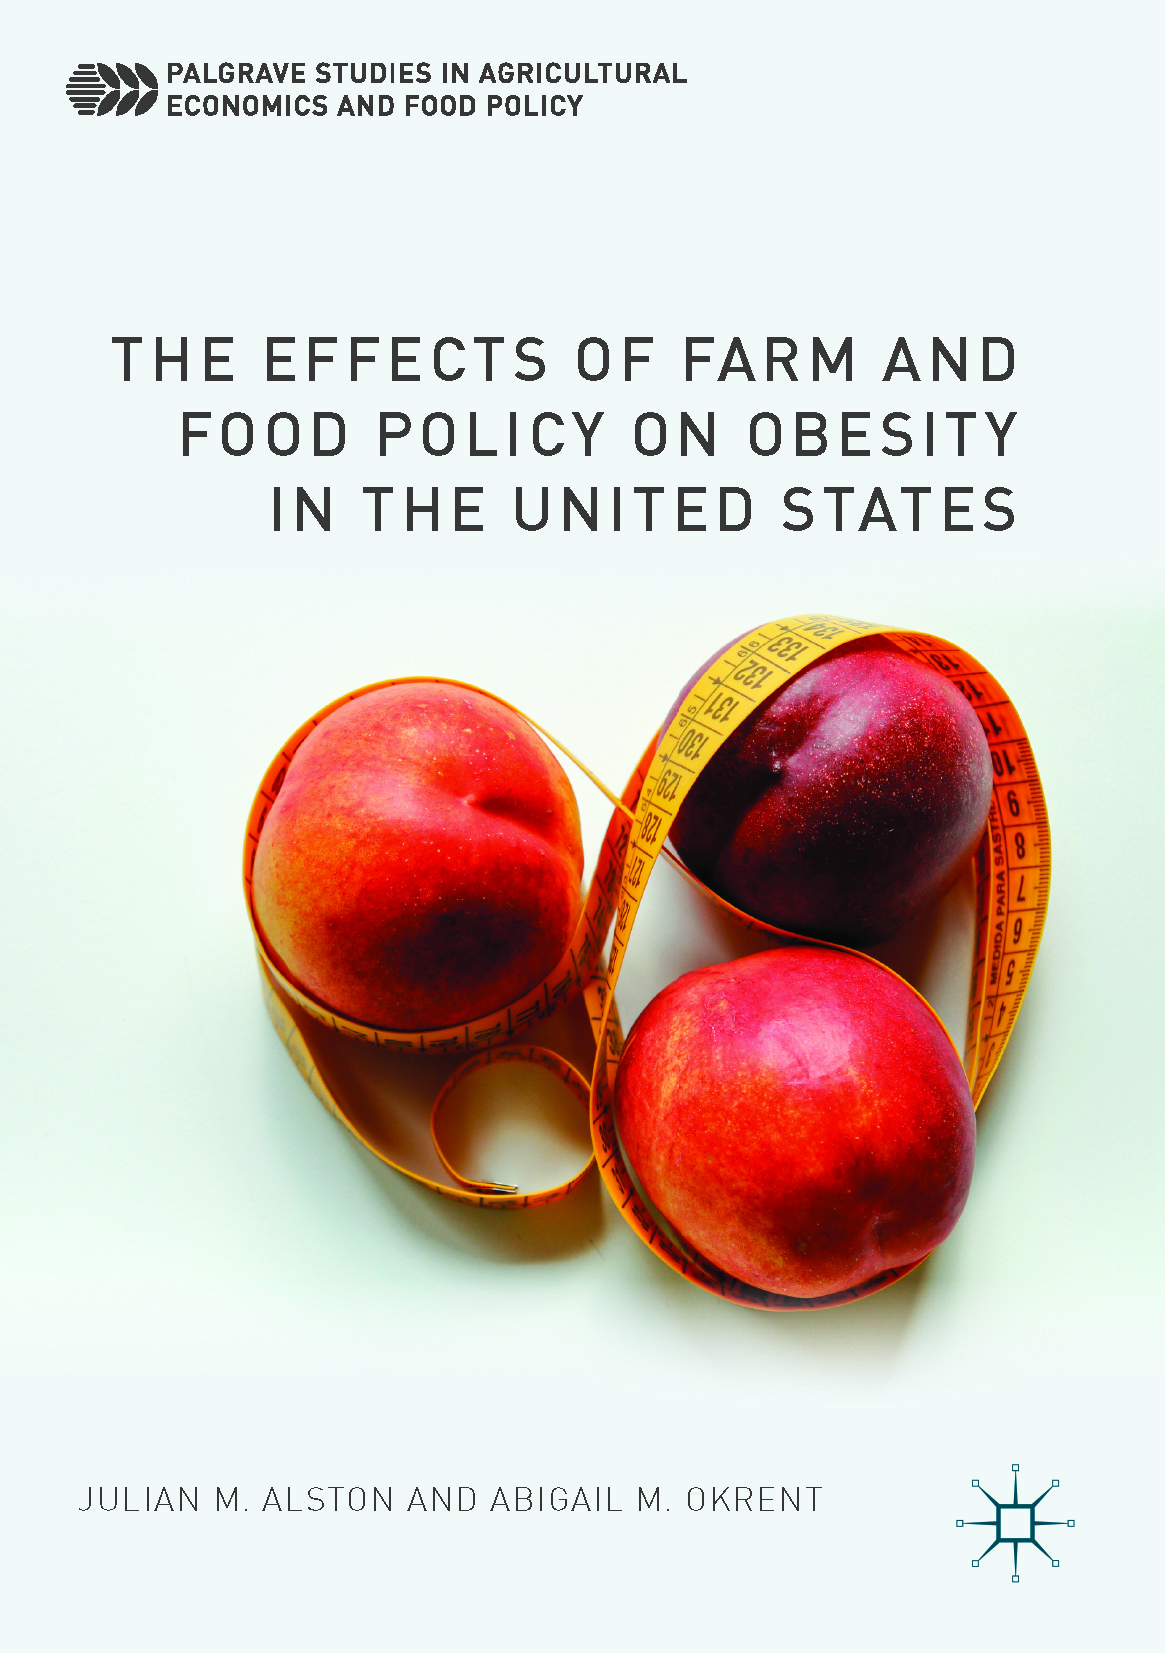 Alston, Julian M. - The Effects of Farm and Food Policy on Obesity in the United States, ebook